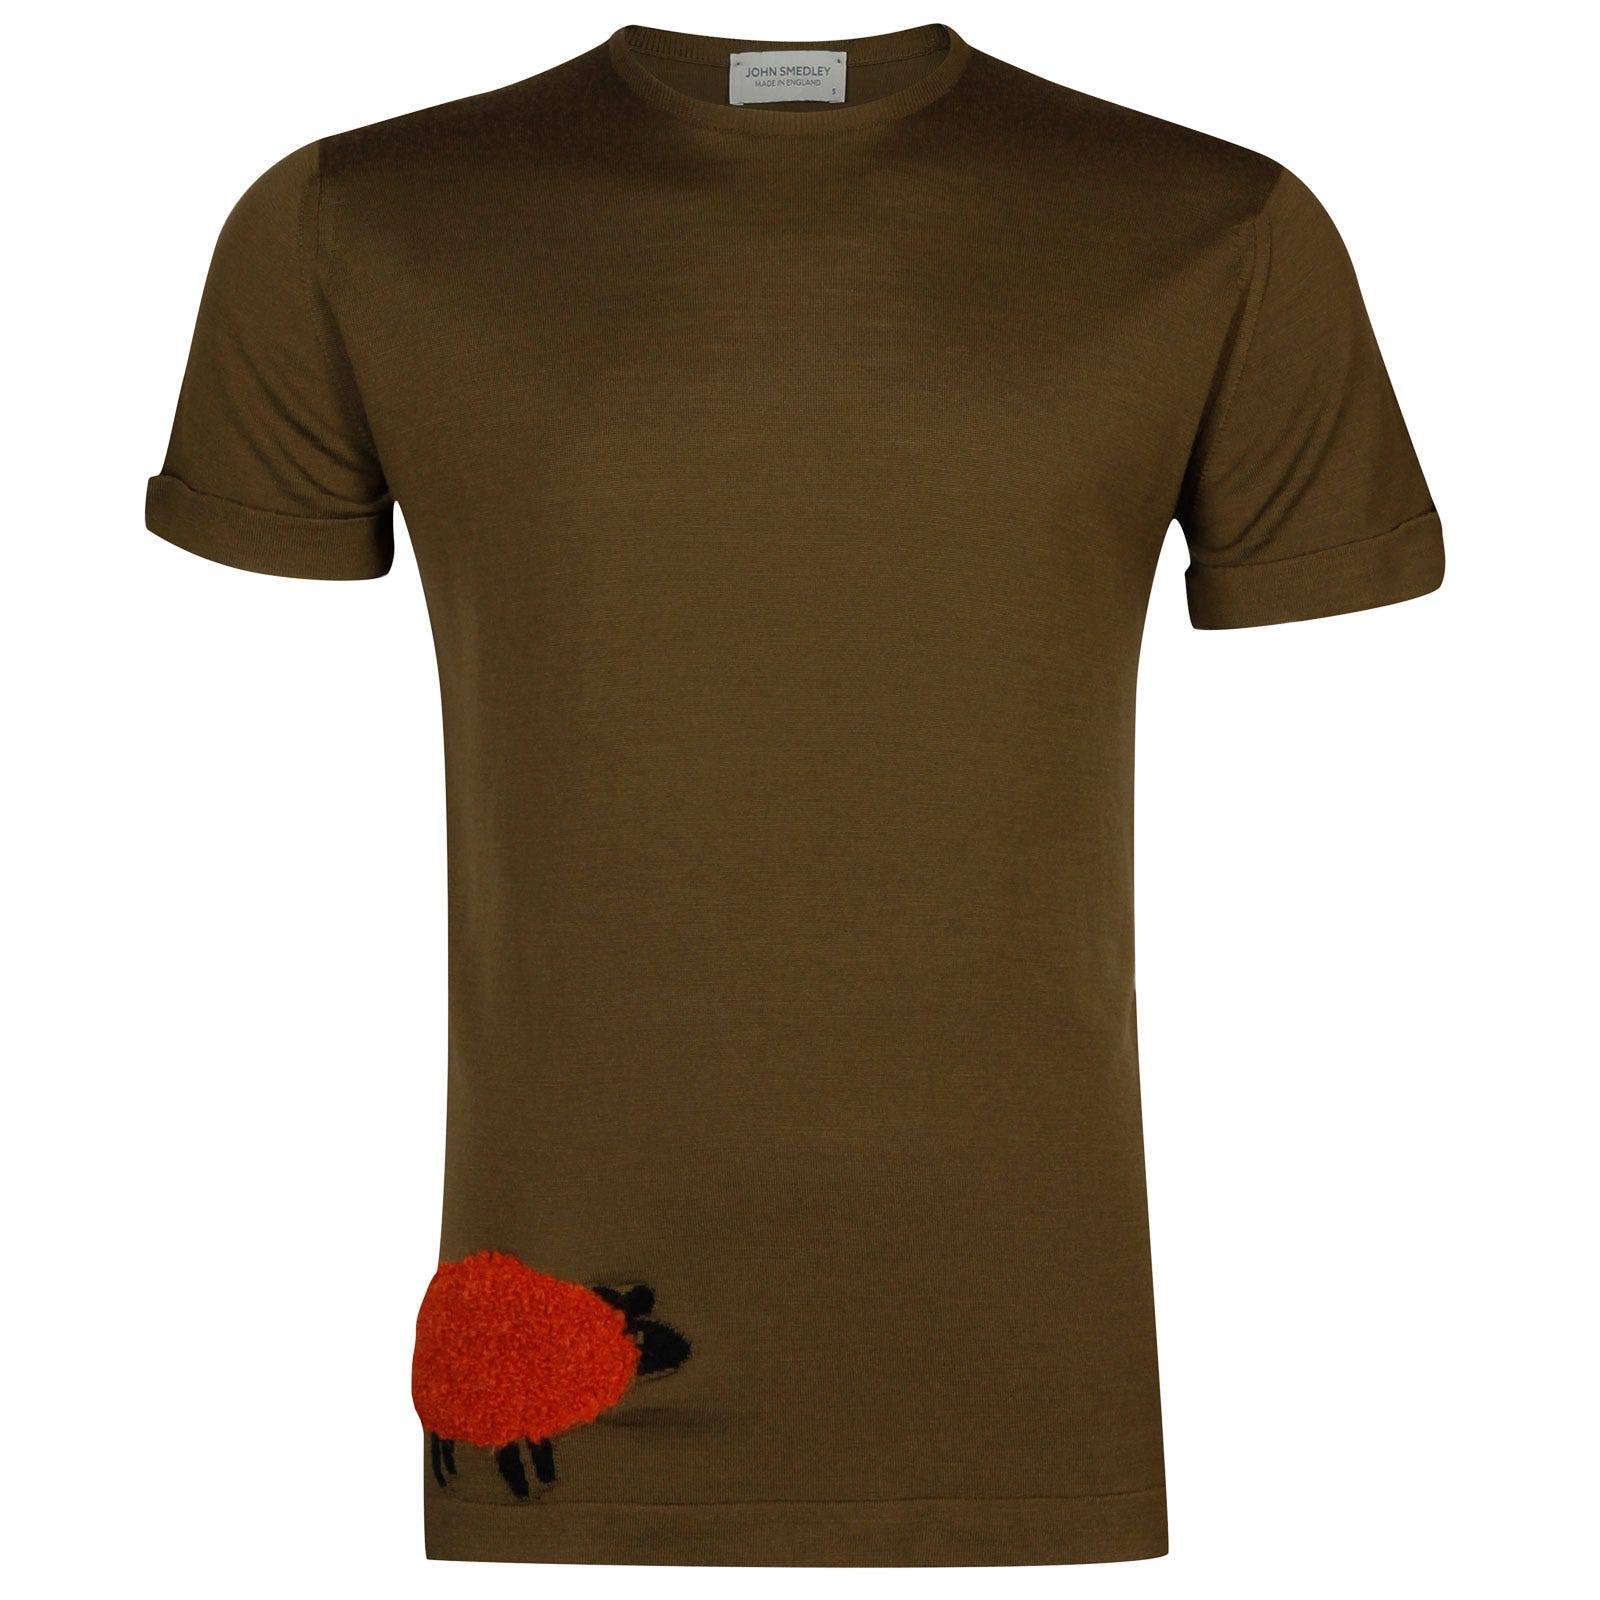 John Smedley bleat Merino Wool T-shirt in Kielder Green/Flare